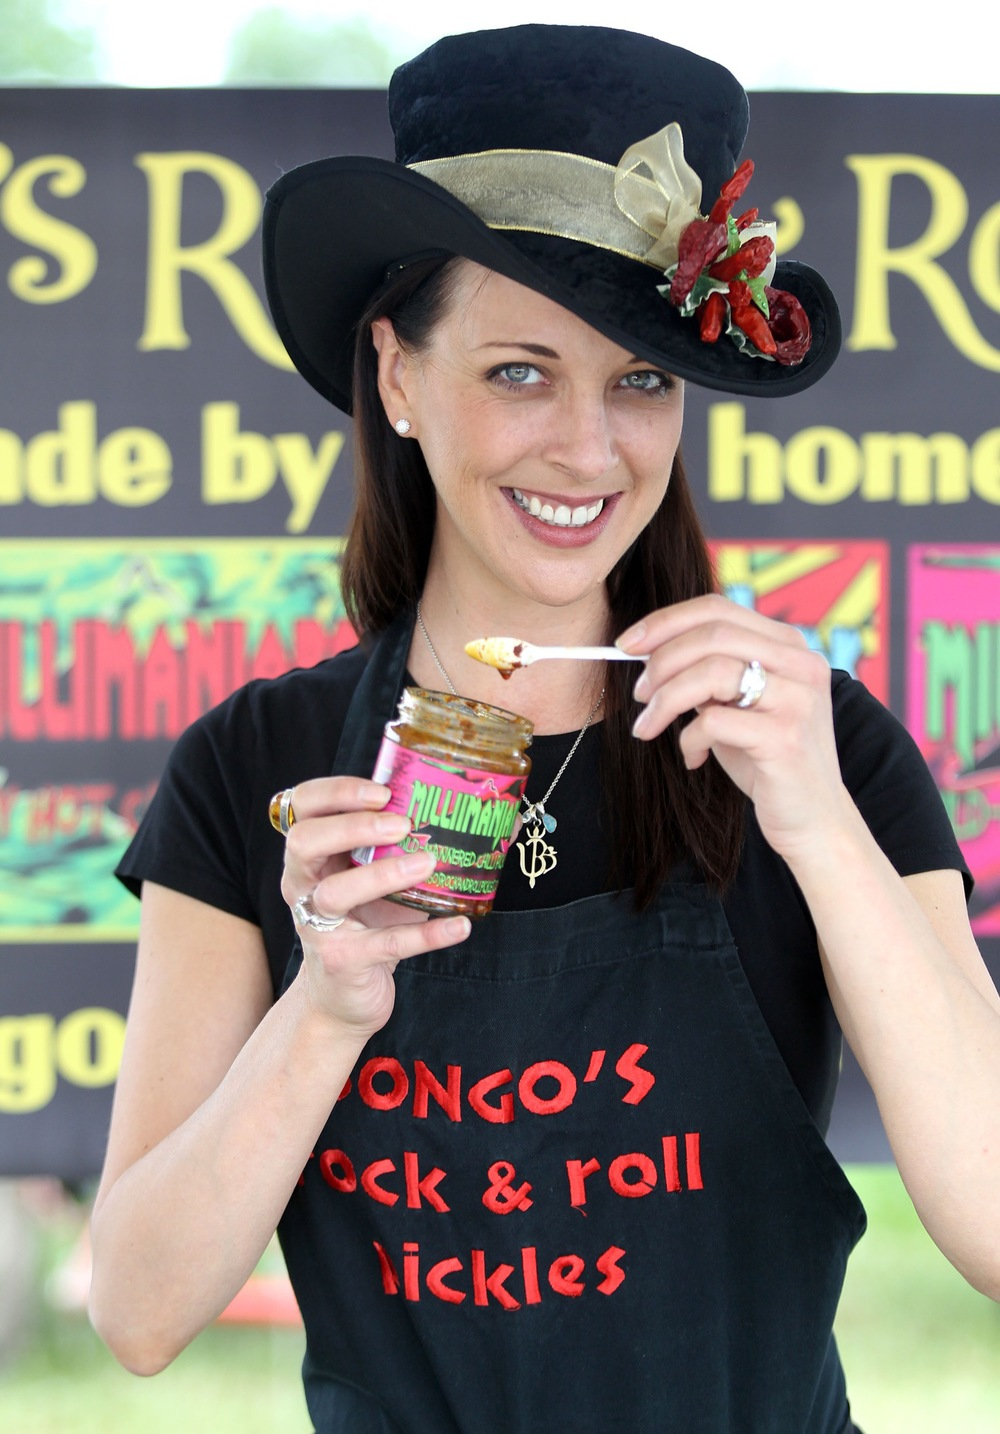 Deborah Bouchard from Bongo's Rock & roll Chilli Pickles